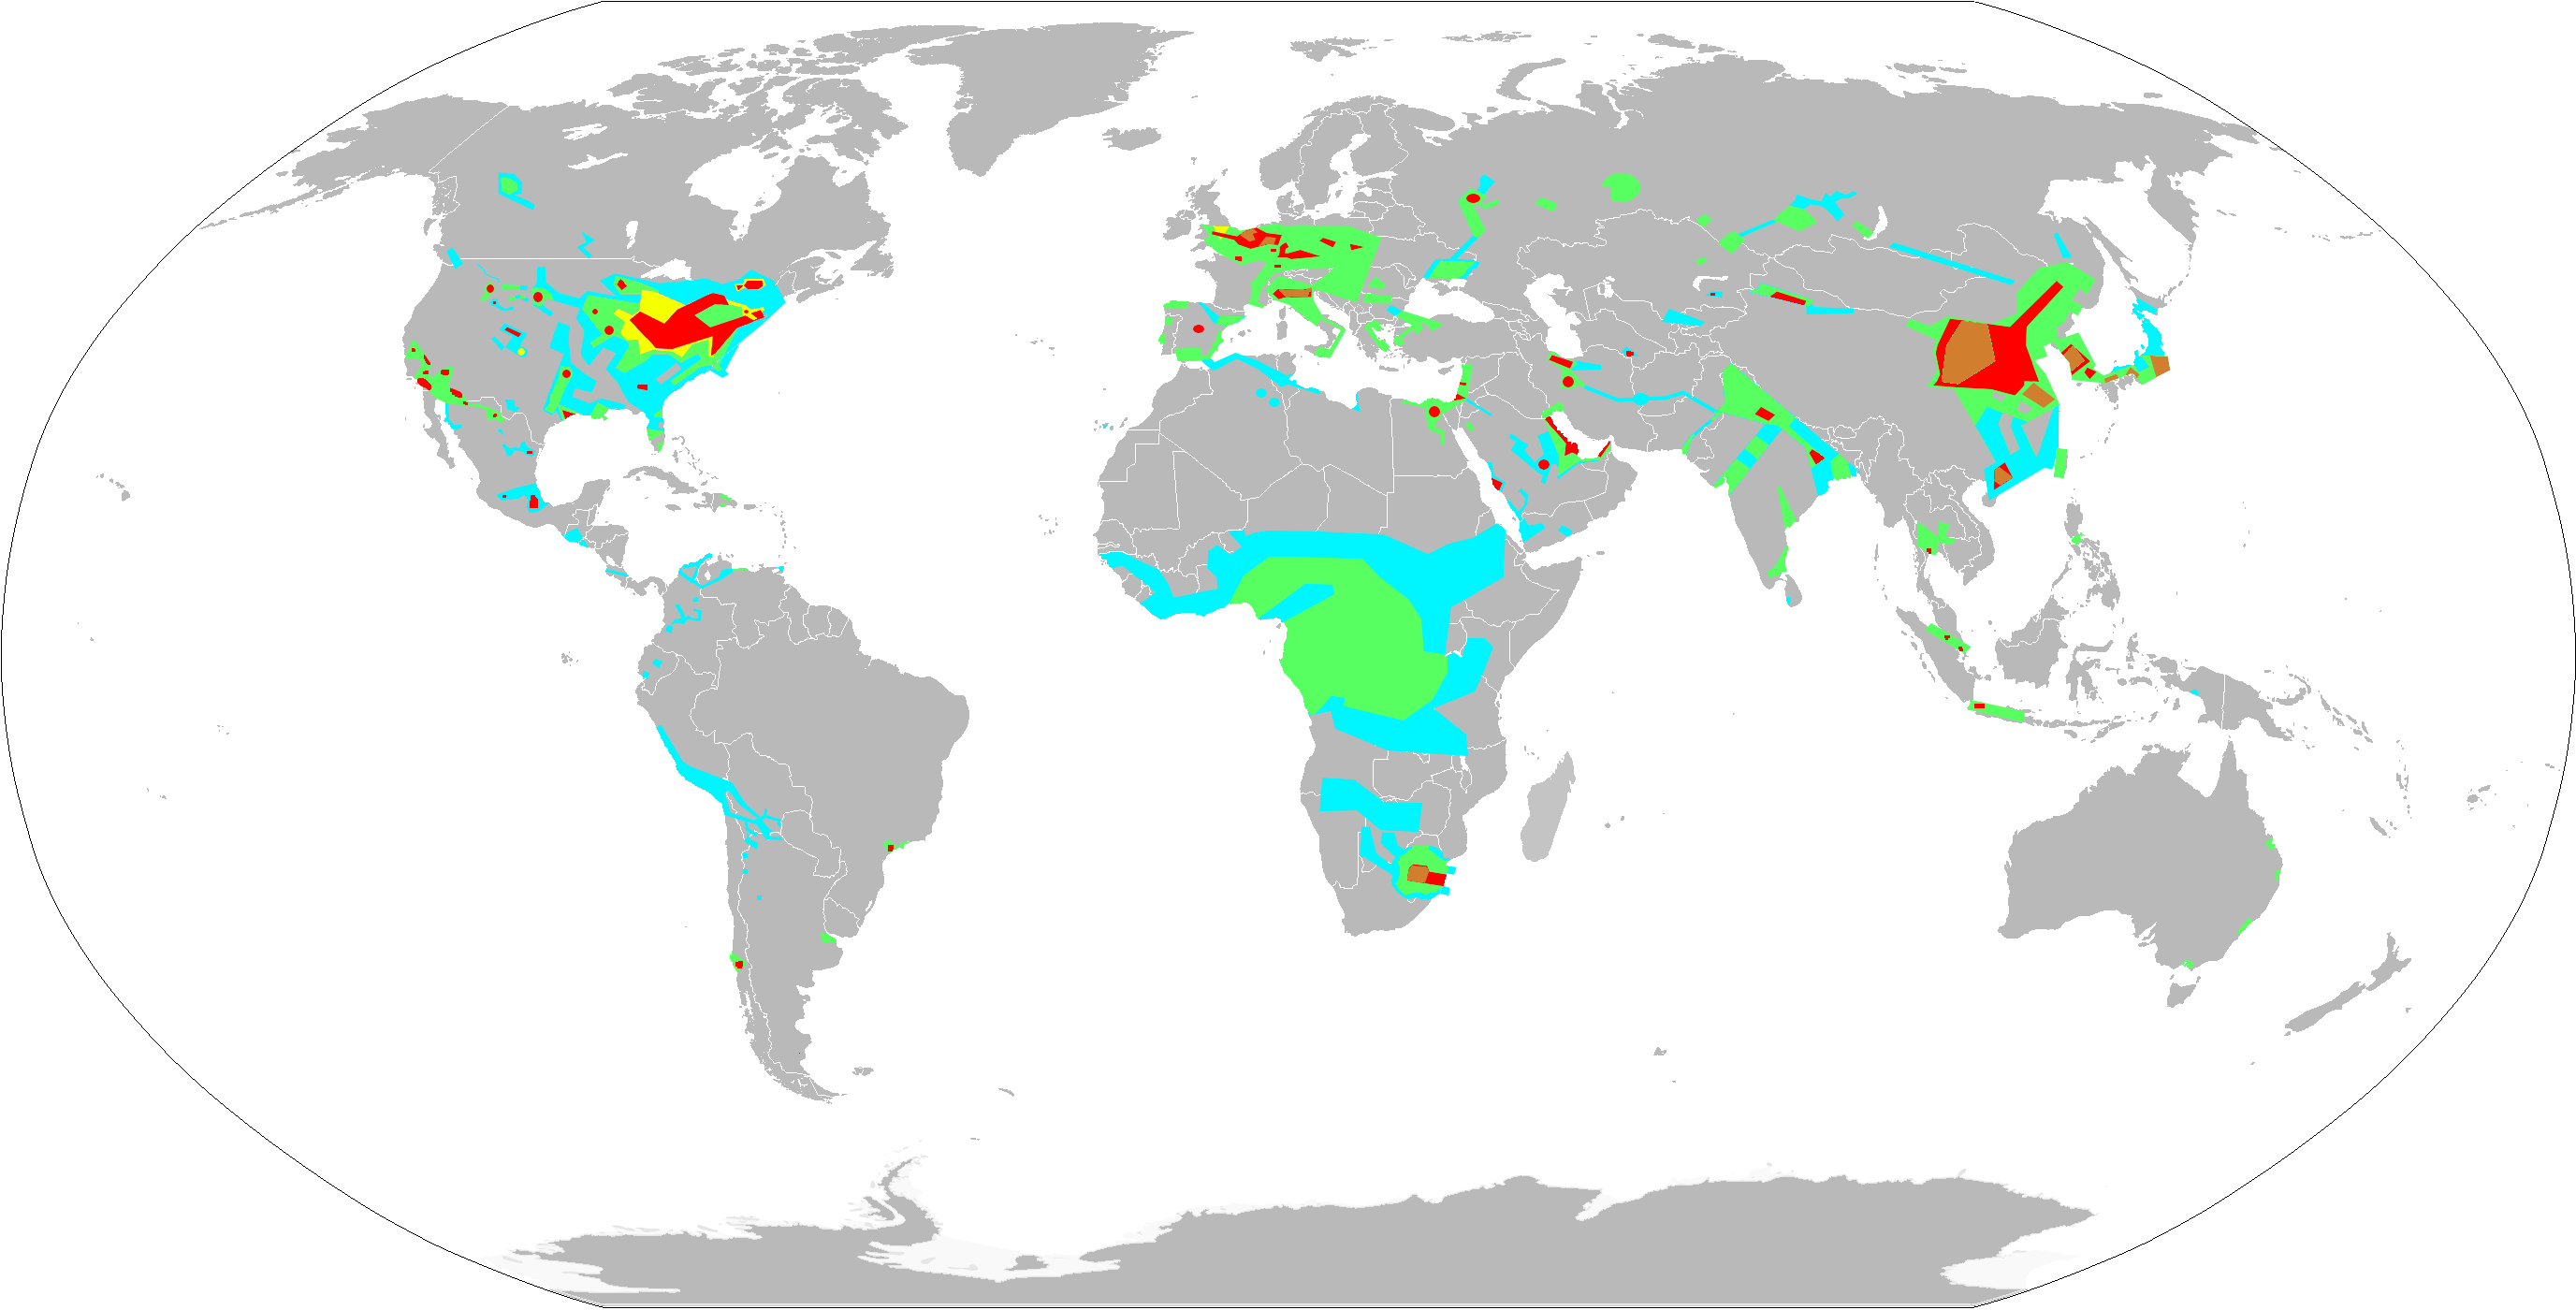 File:Global air pollution map.